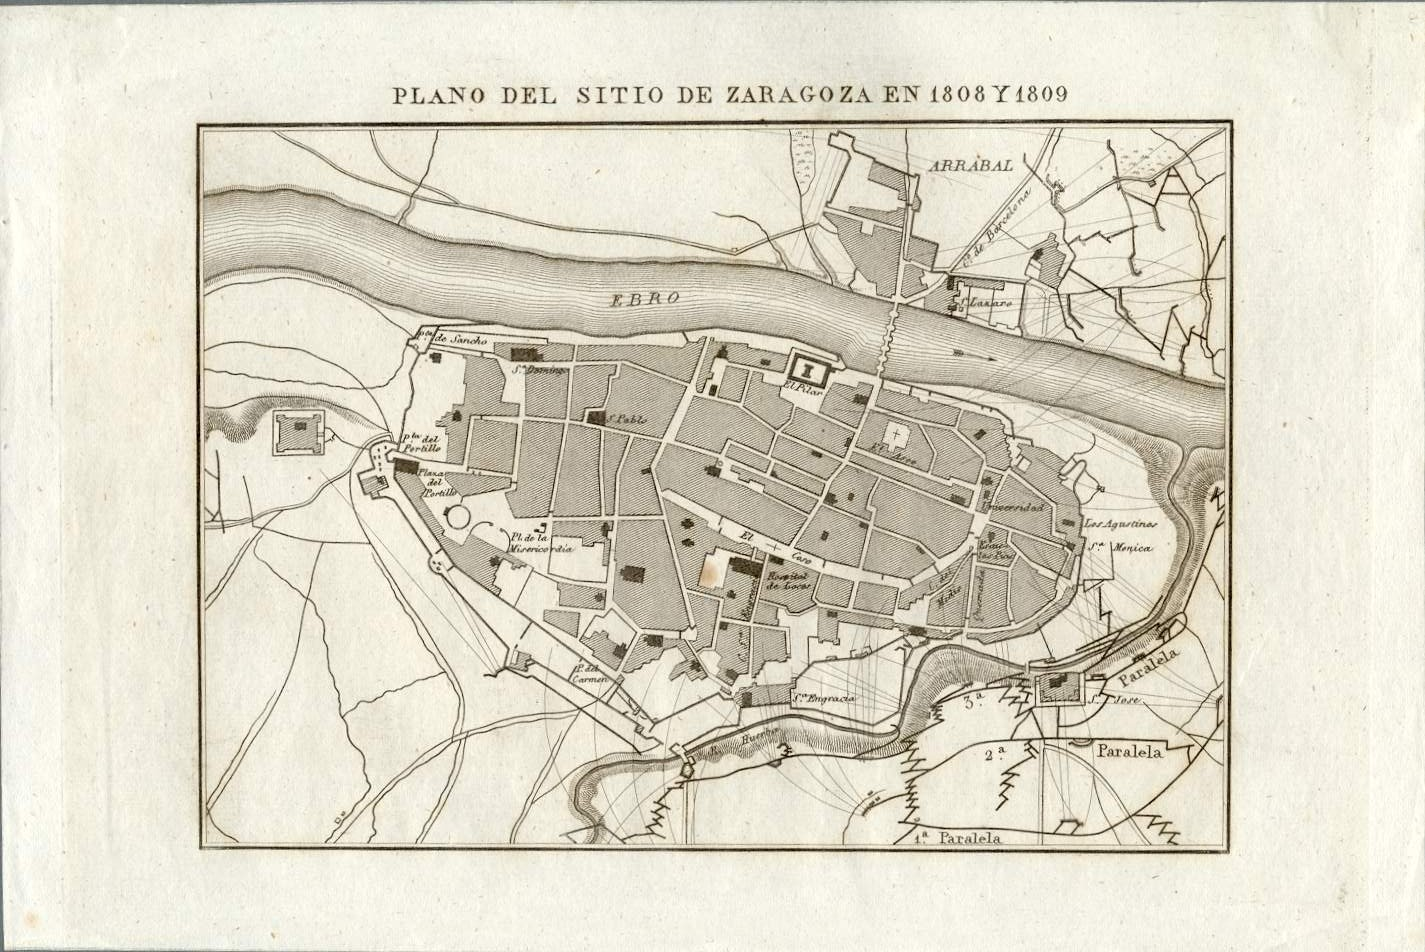 Map of the siege of Zaragoza in 1808 and 1809